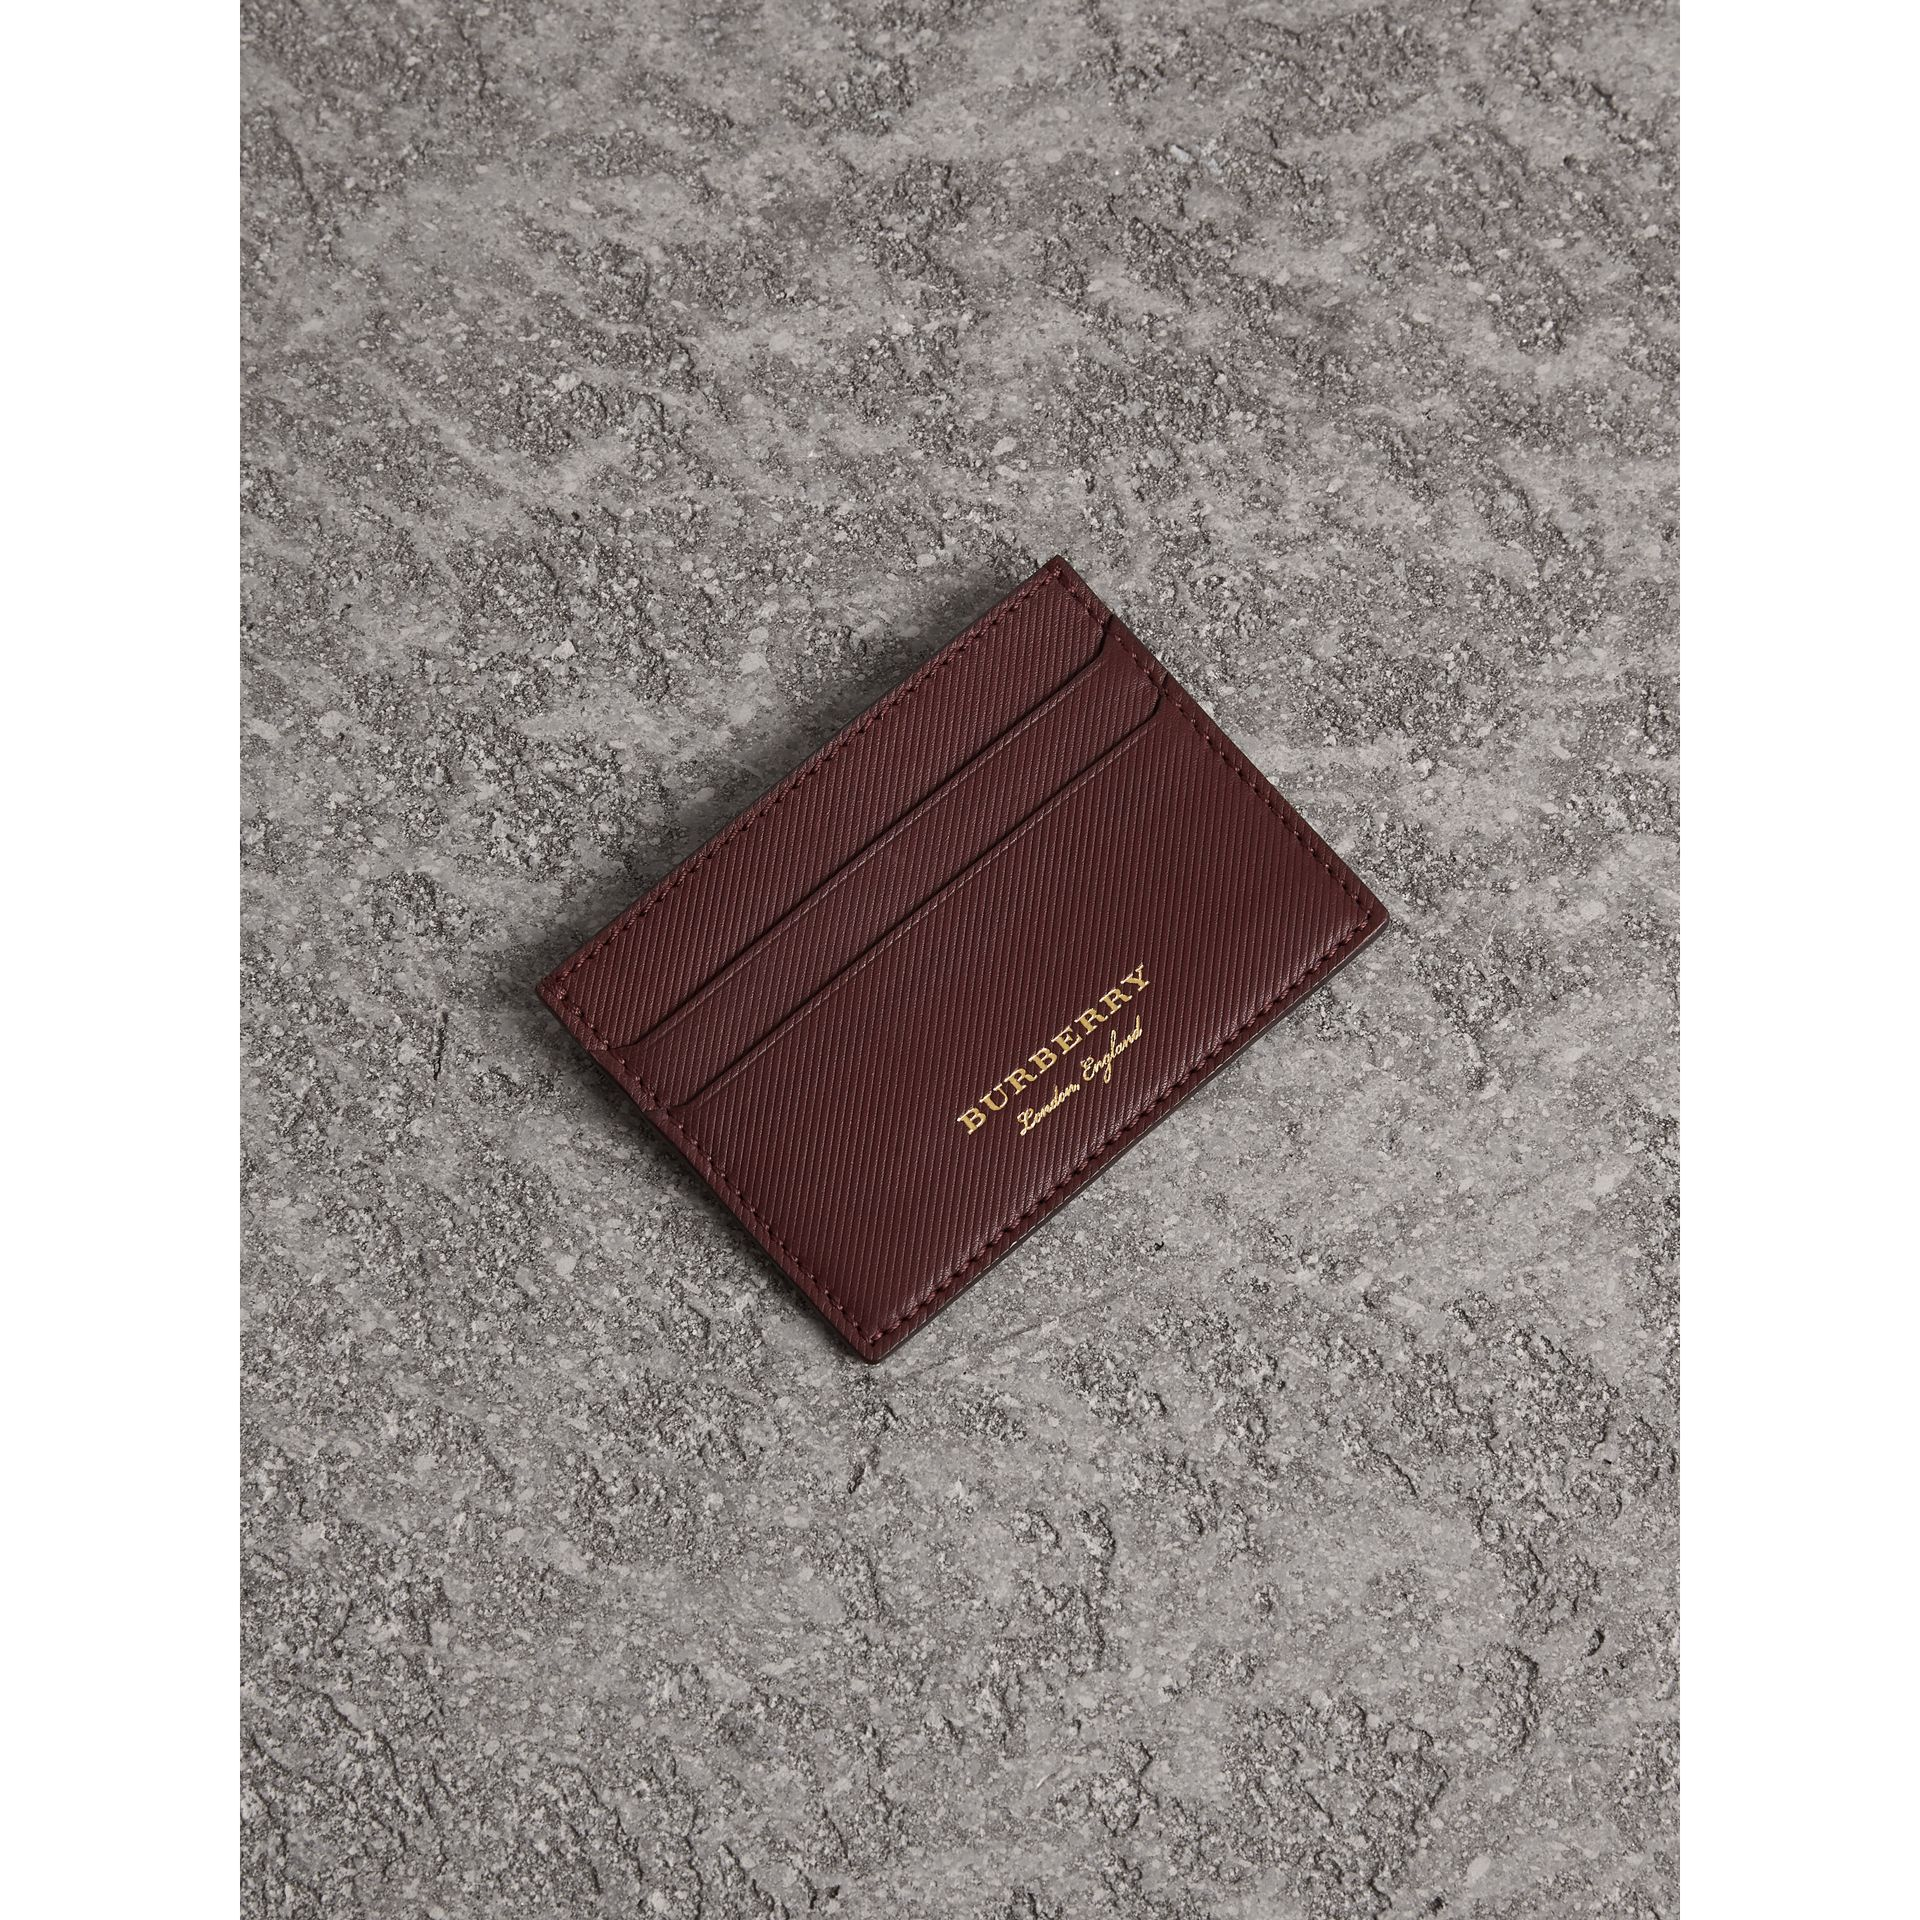 Trench Leather Card Case in Wine - Men | Burberry Hong Kong - gallery image 1